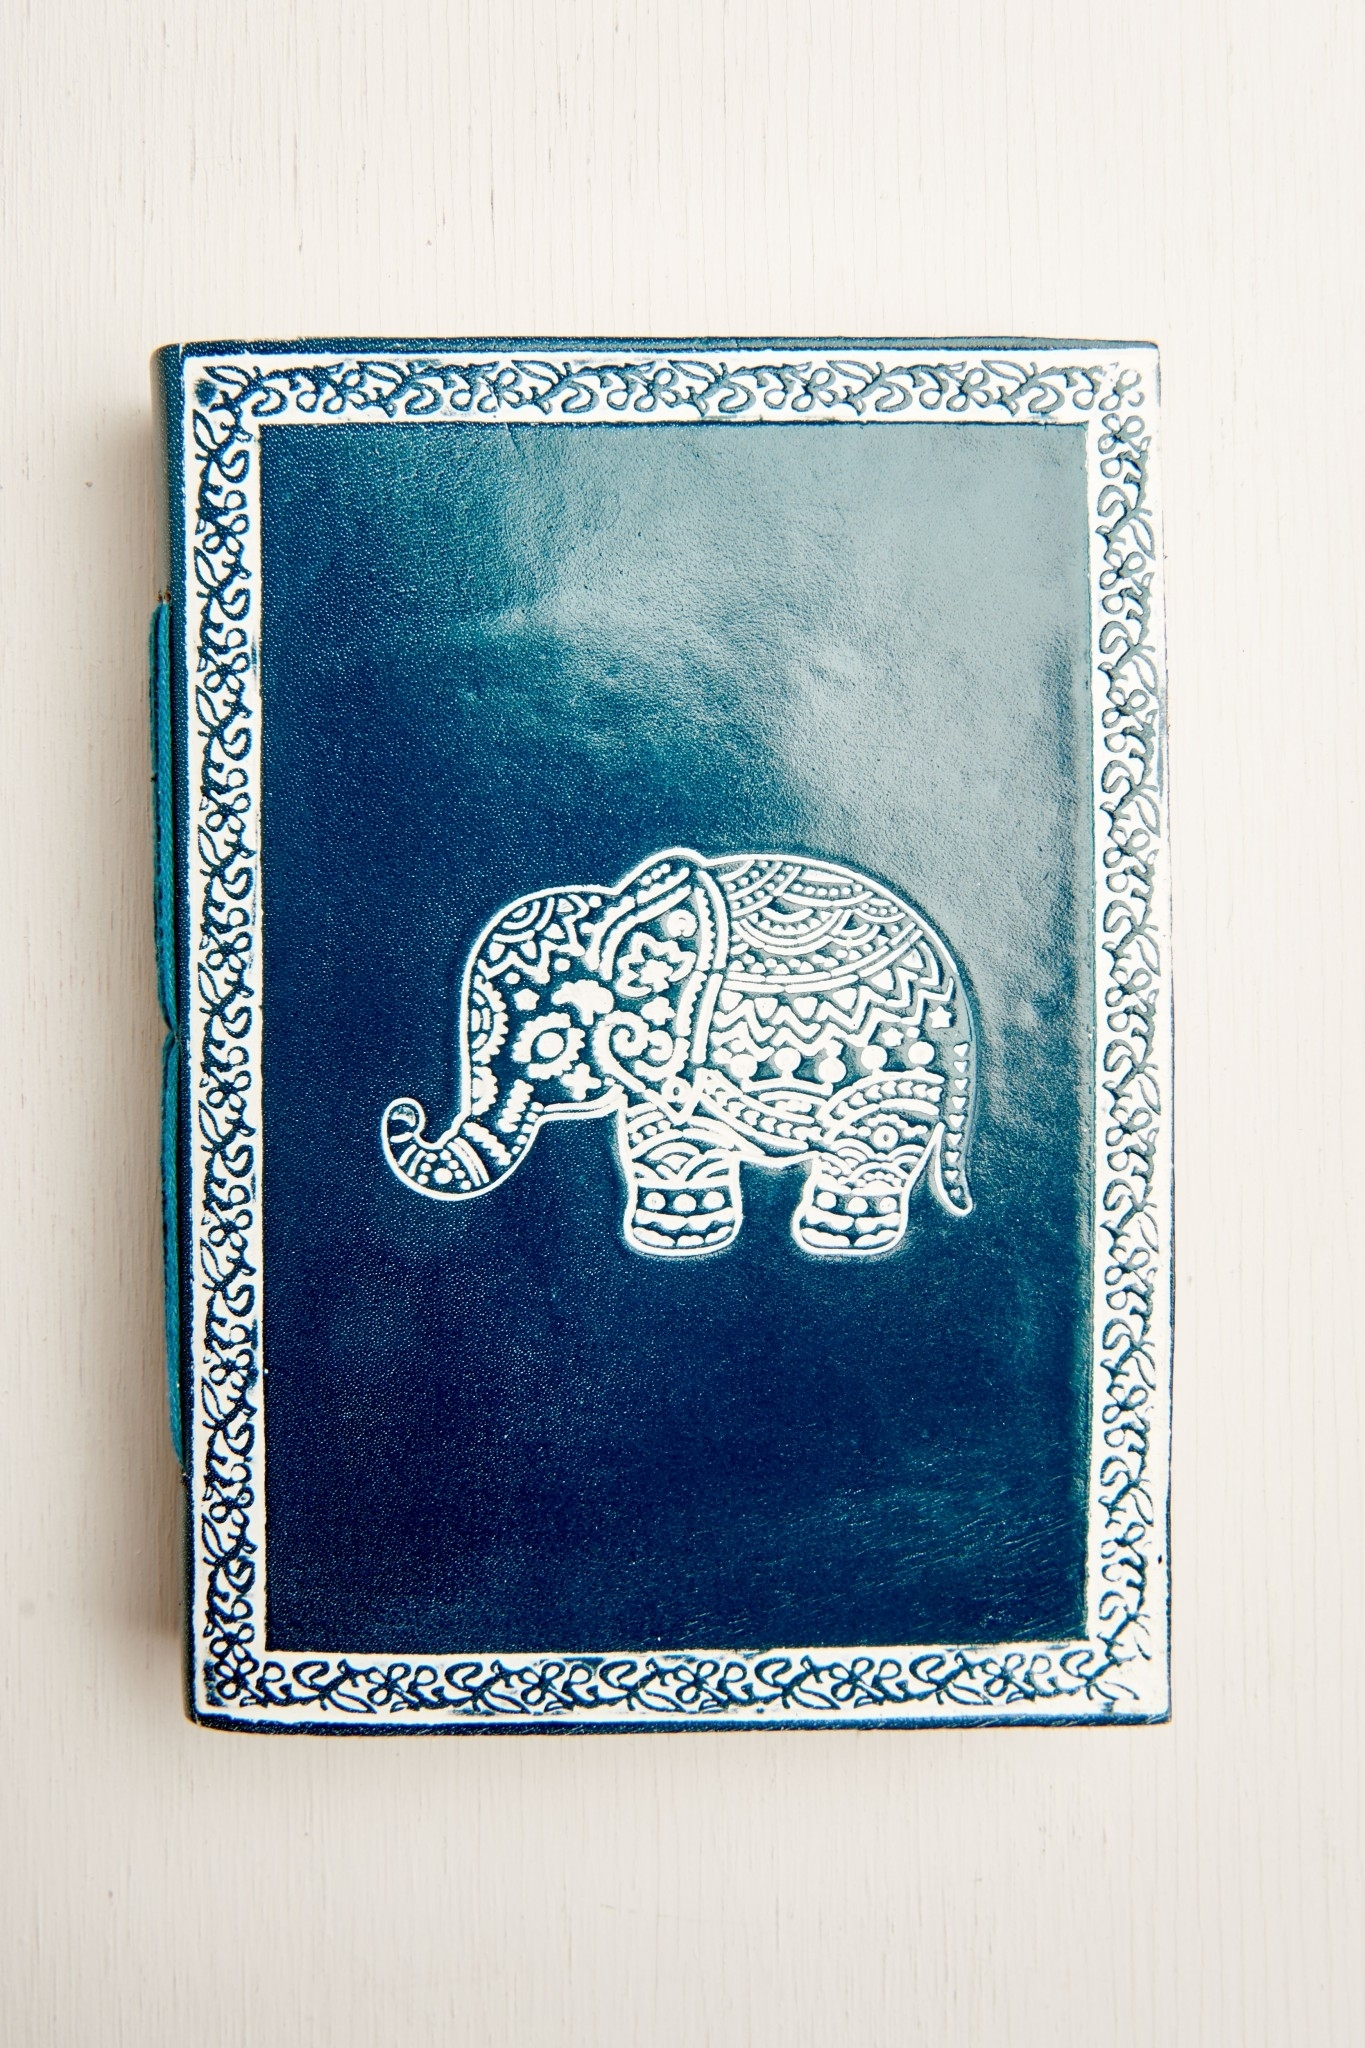 Search Results For: 'elephant' – Earthbound Trading Co (View 10 of 15)